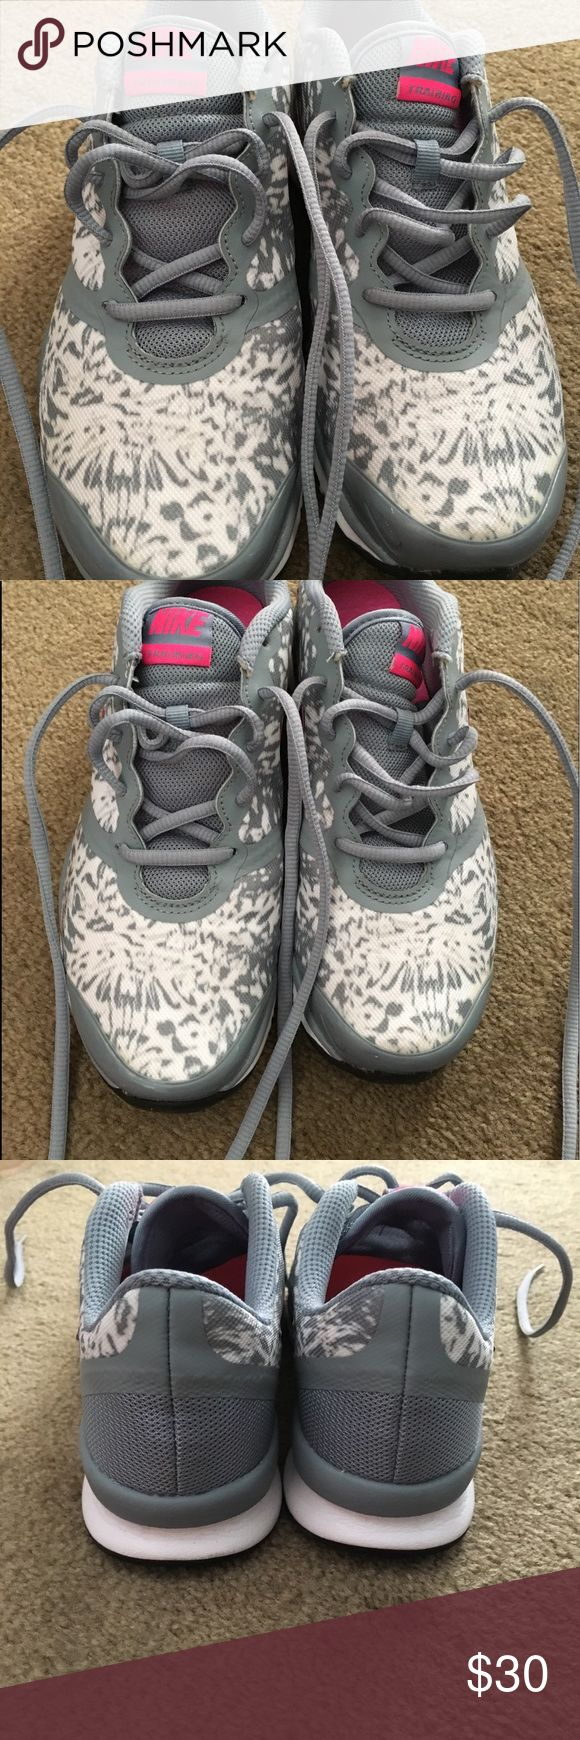 """Nike In Season TR Print training shoes 6.5 Nike training shoe, size 6.5, grey/white """"splatter"""" print. Worn maybe once or twice. Has sockliner. The tongue is completely sewn in, which I've shown in one of the pictures. Comes with box. Smoke and pet free home. Nike Shoes Athletic Shoes"""